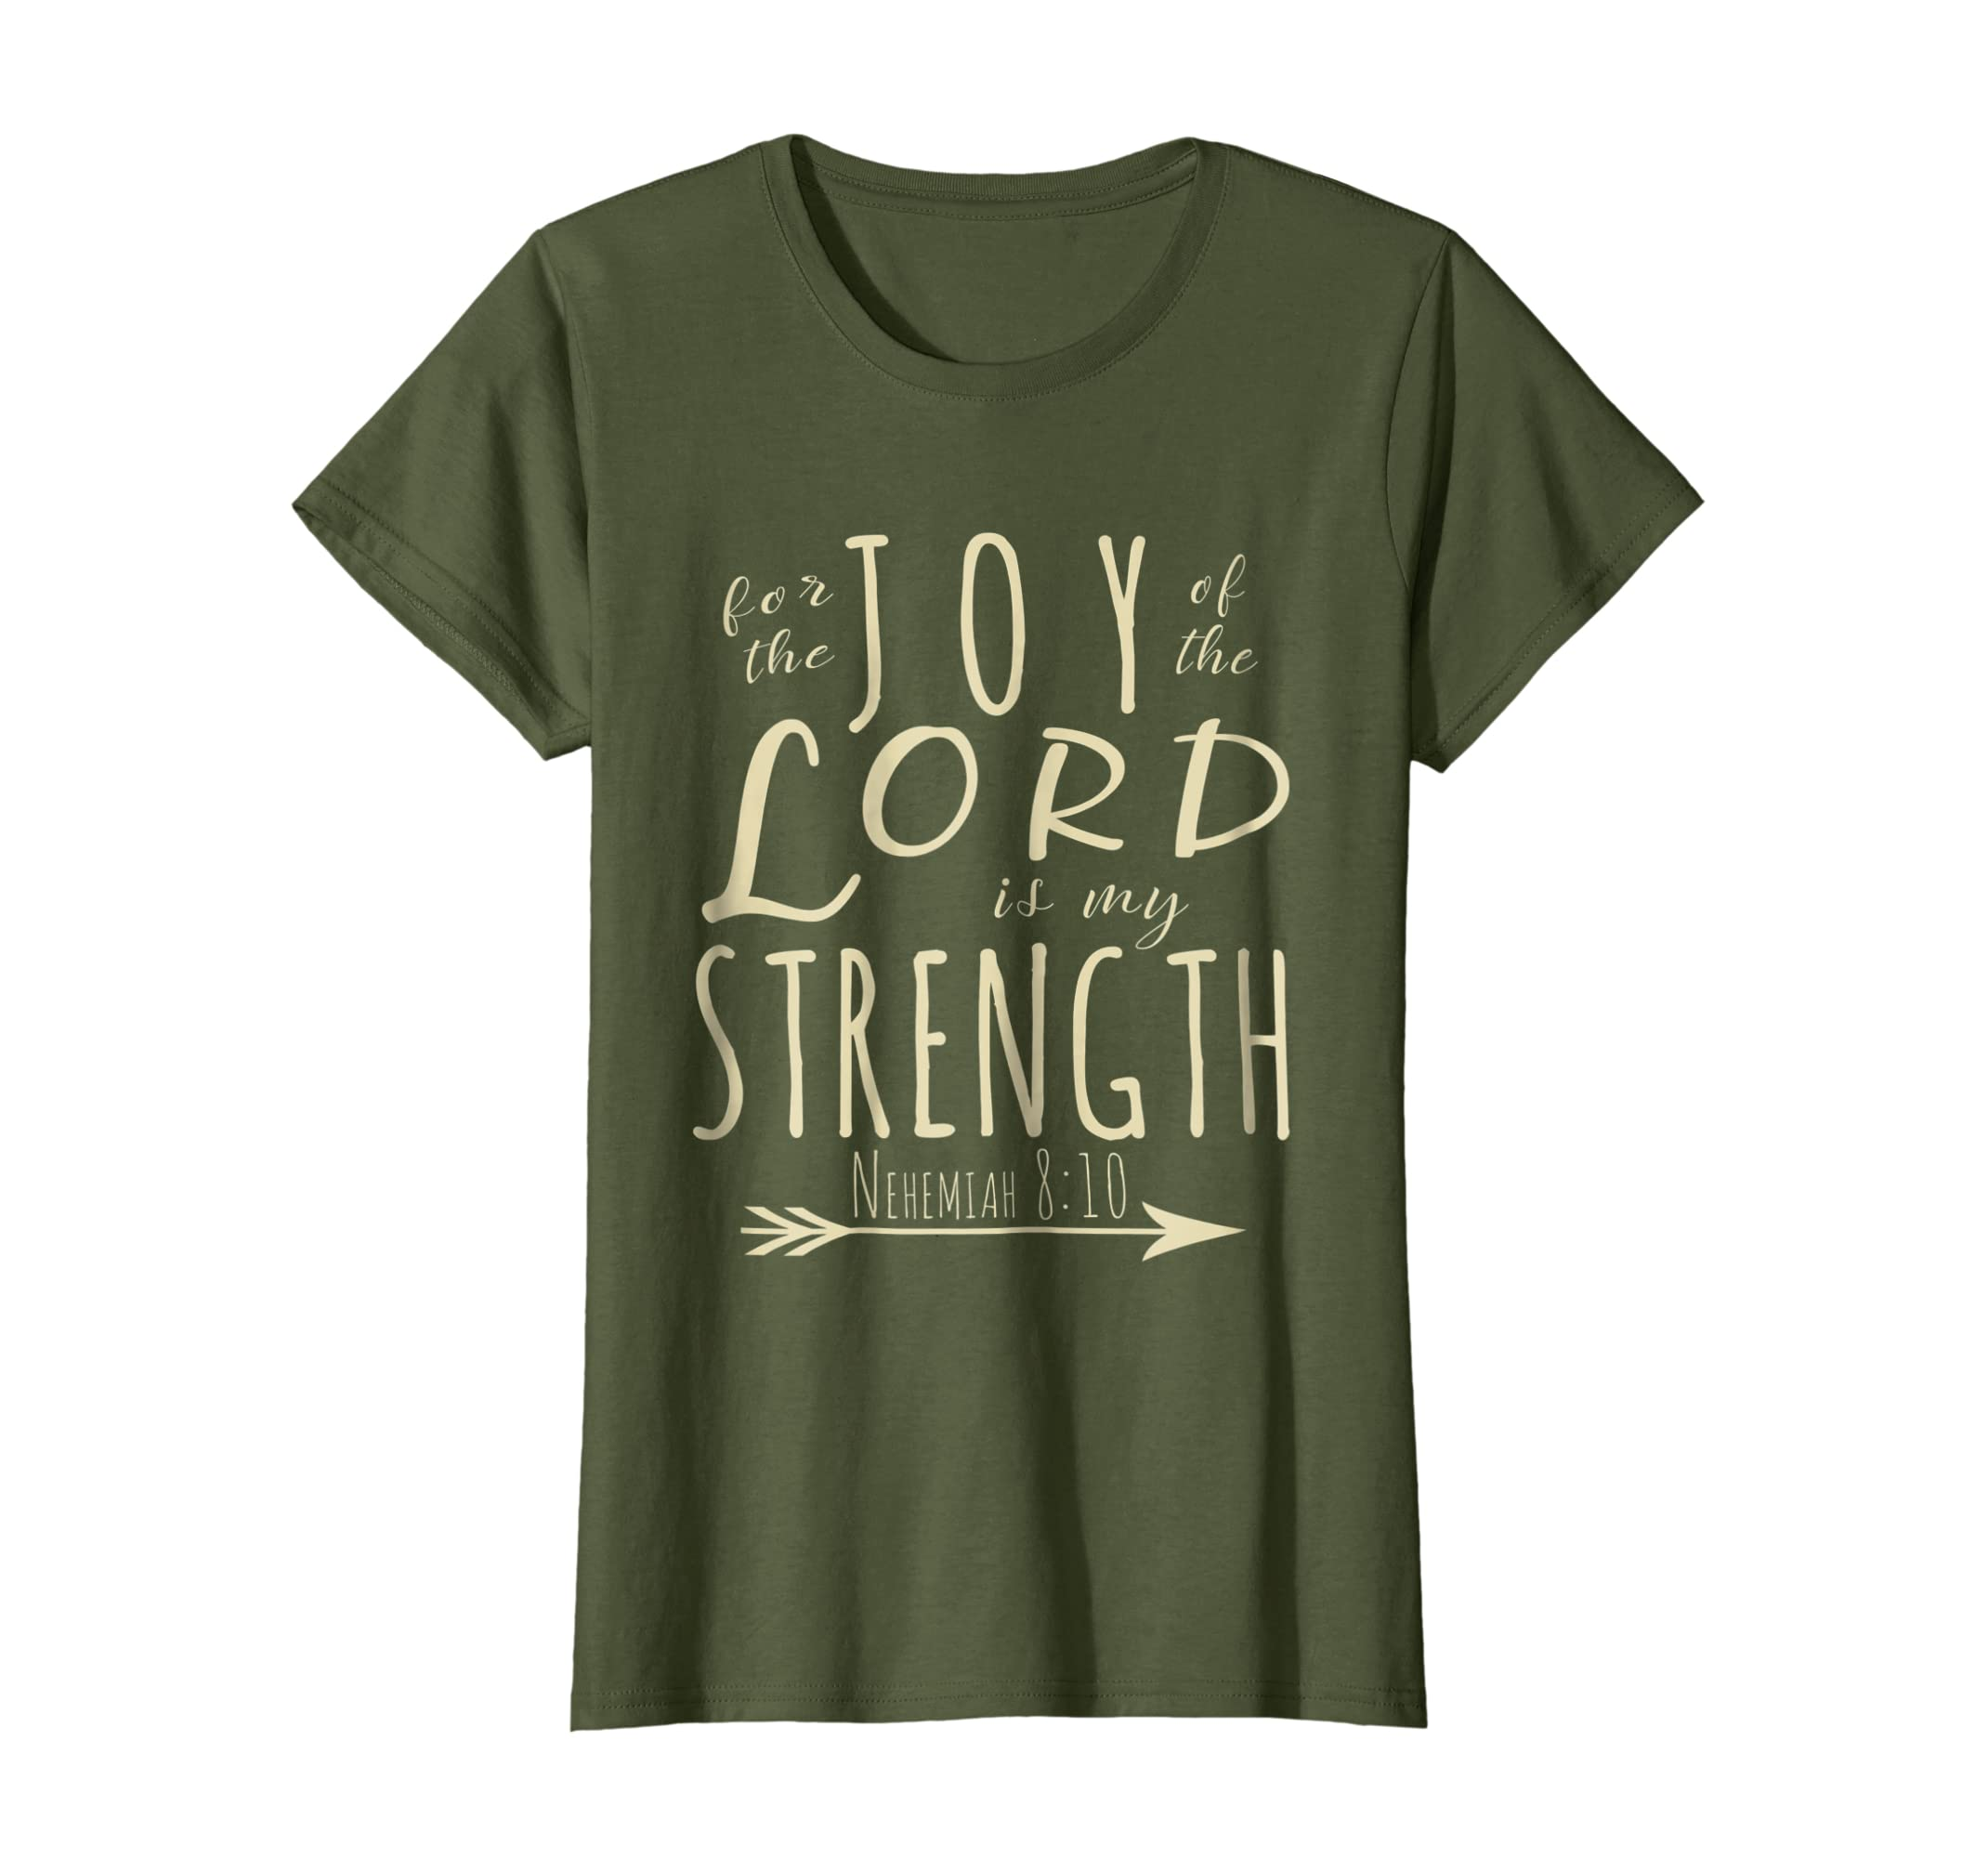 For the Joy of the Lord is My Strength Bible Verse T Shirt